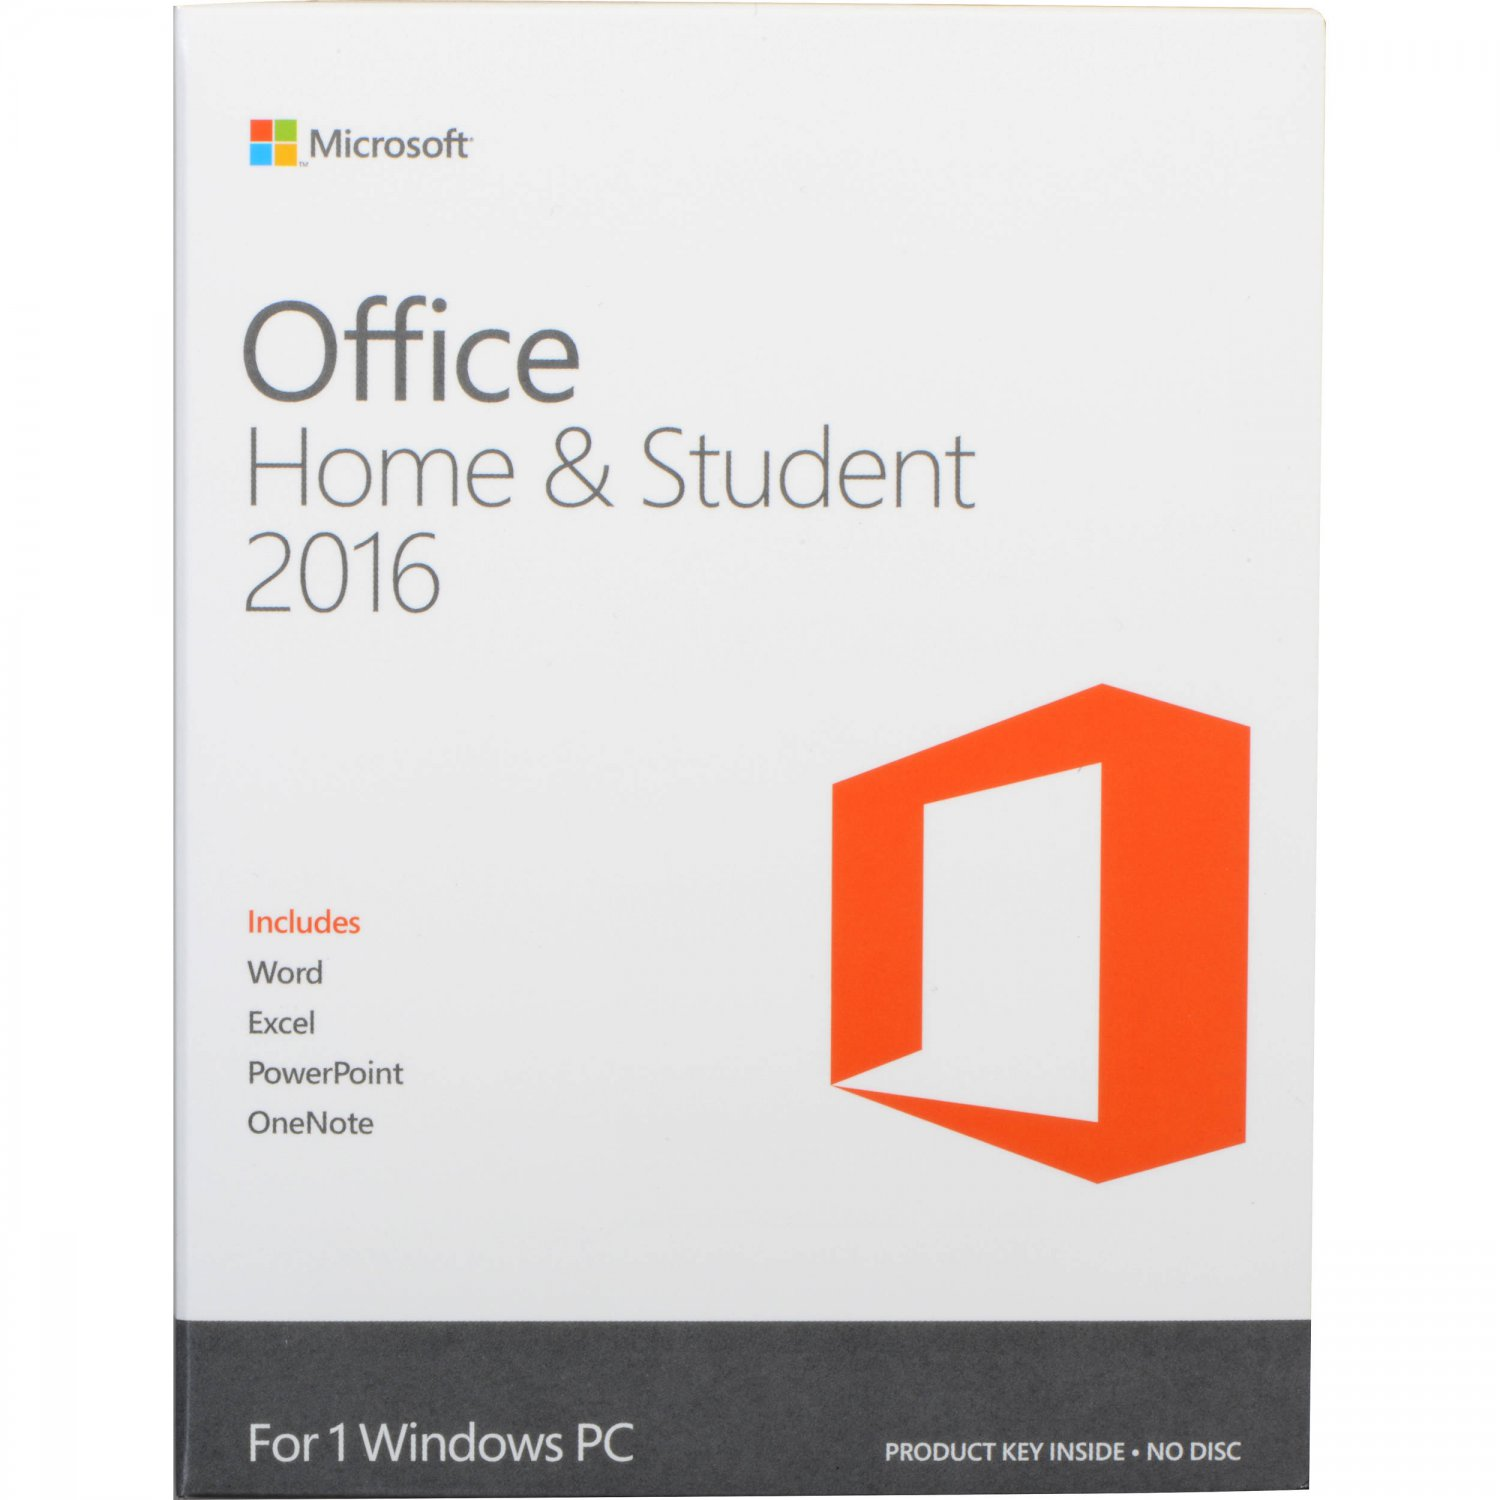 Microsoft Office 2016 Home and Student Windows